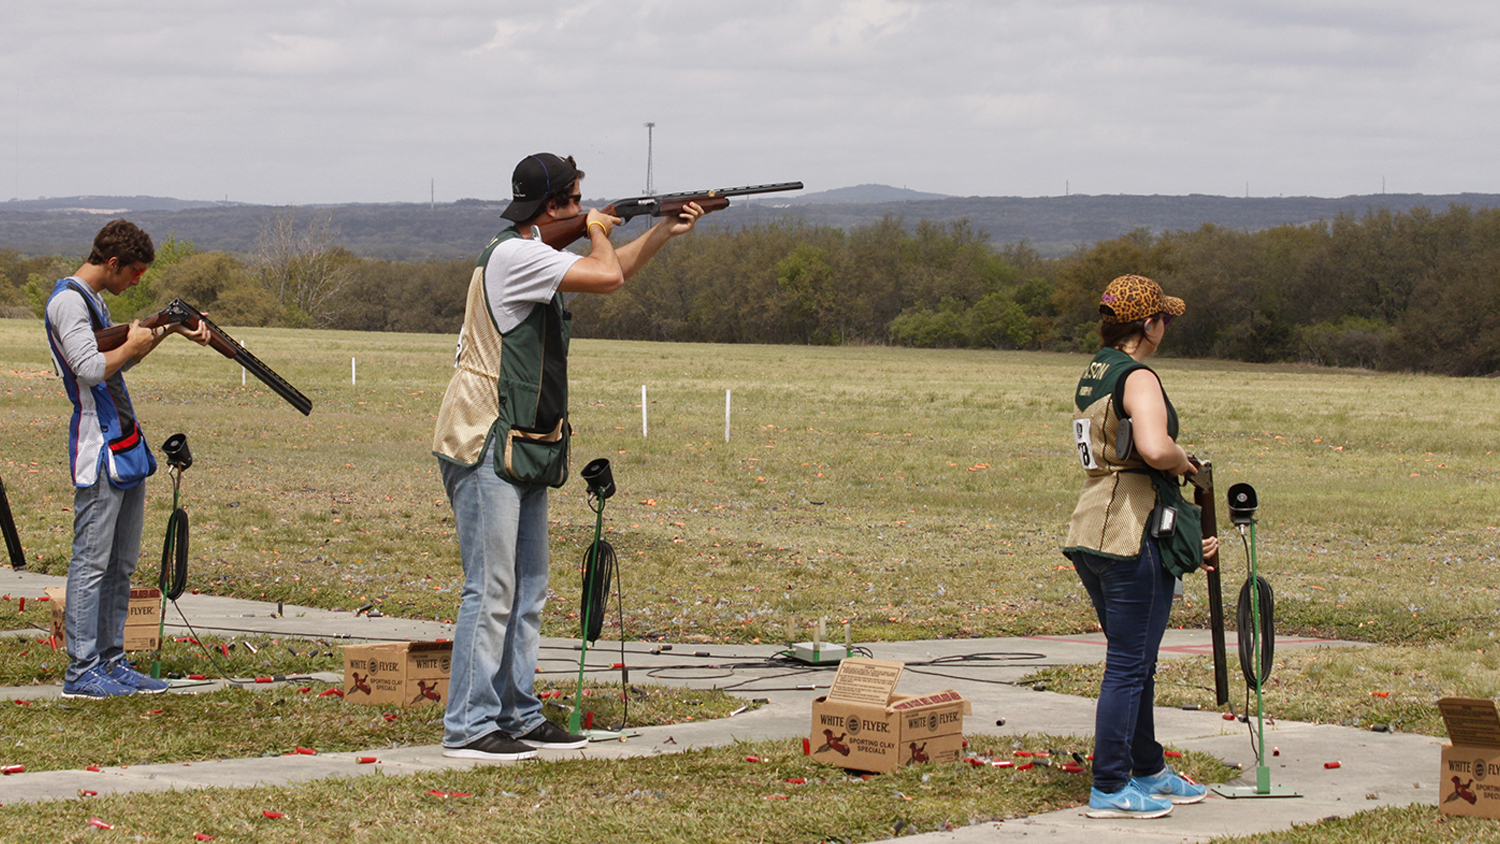 NRA Scholarships Awarded at ACUI Clay Target Championships